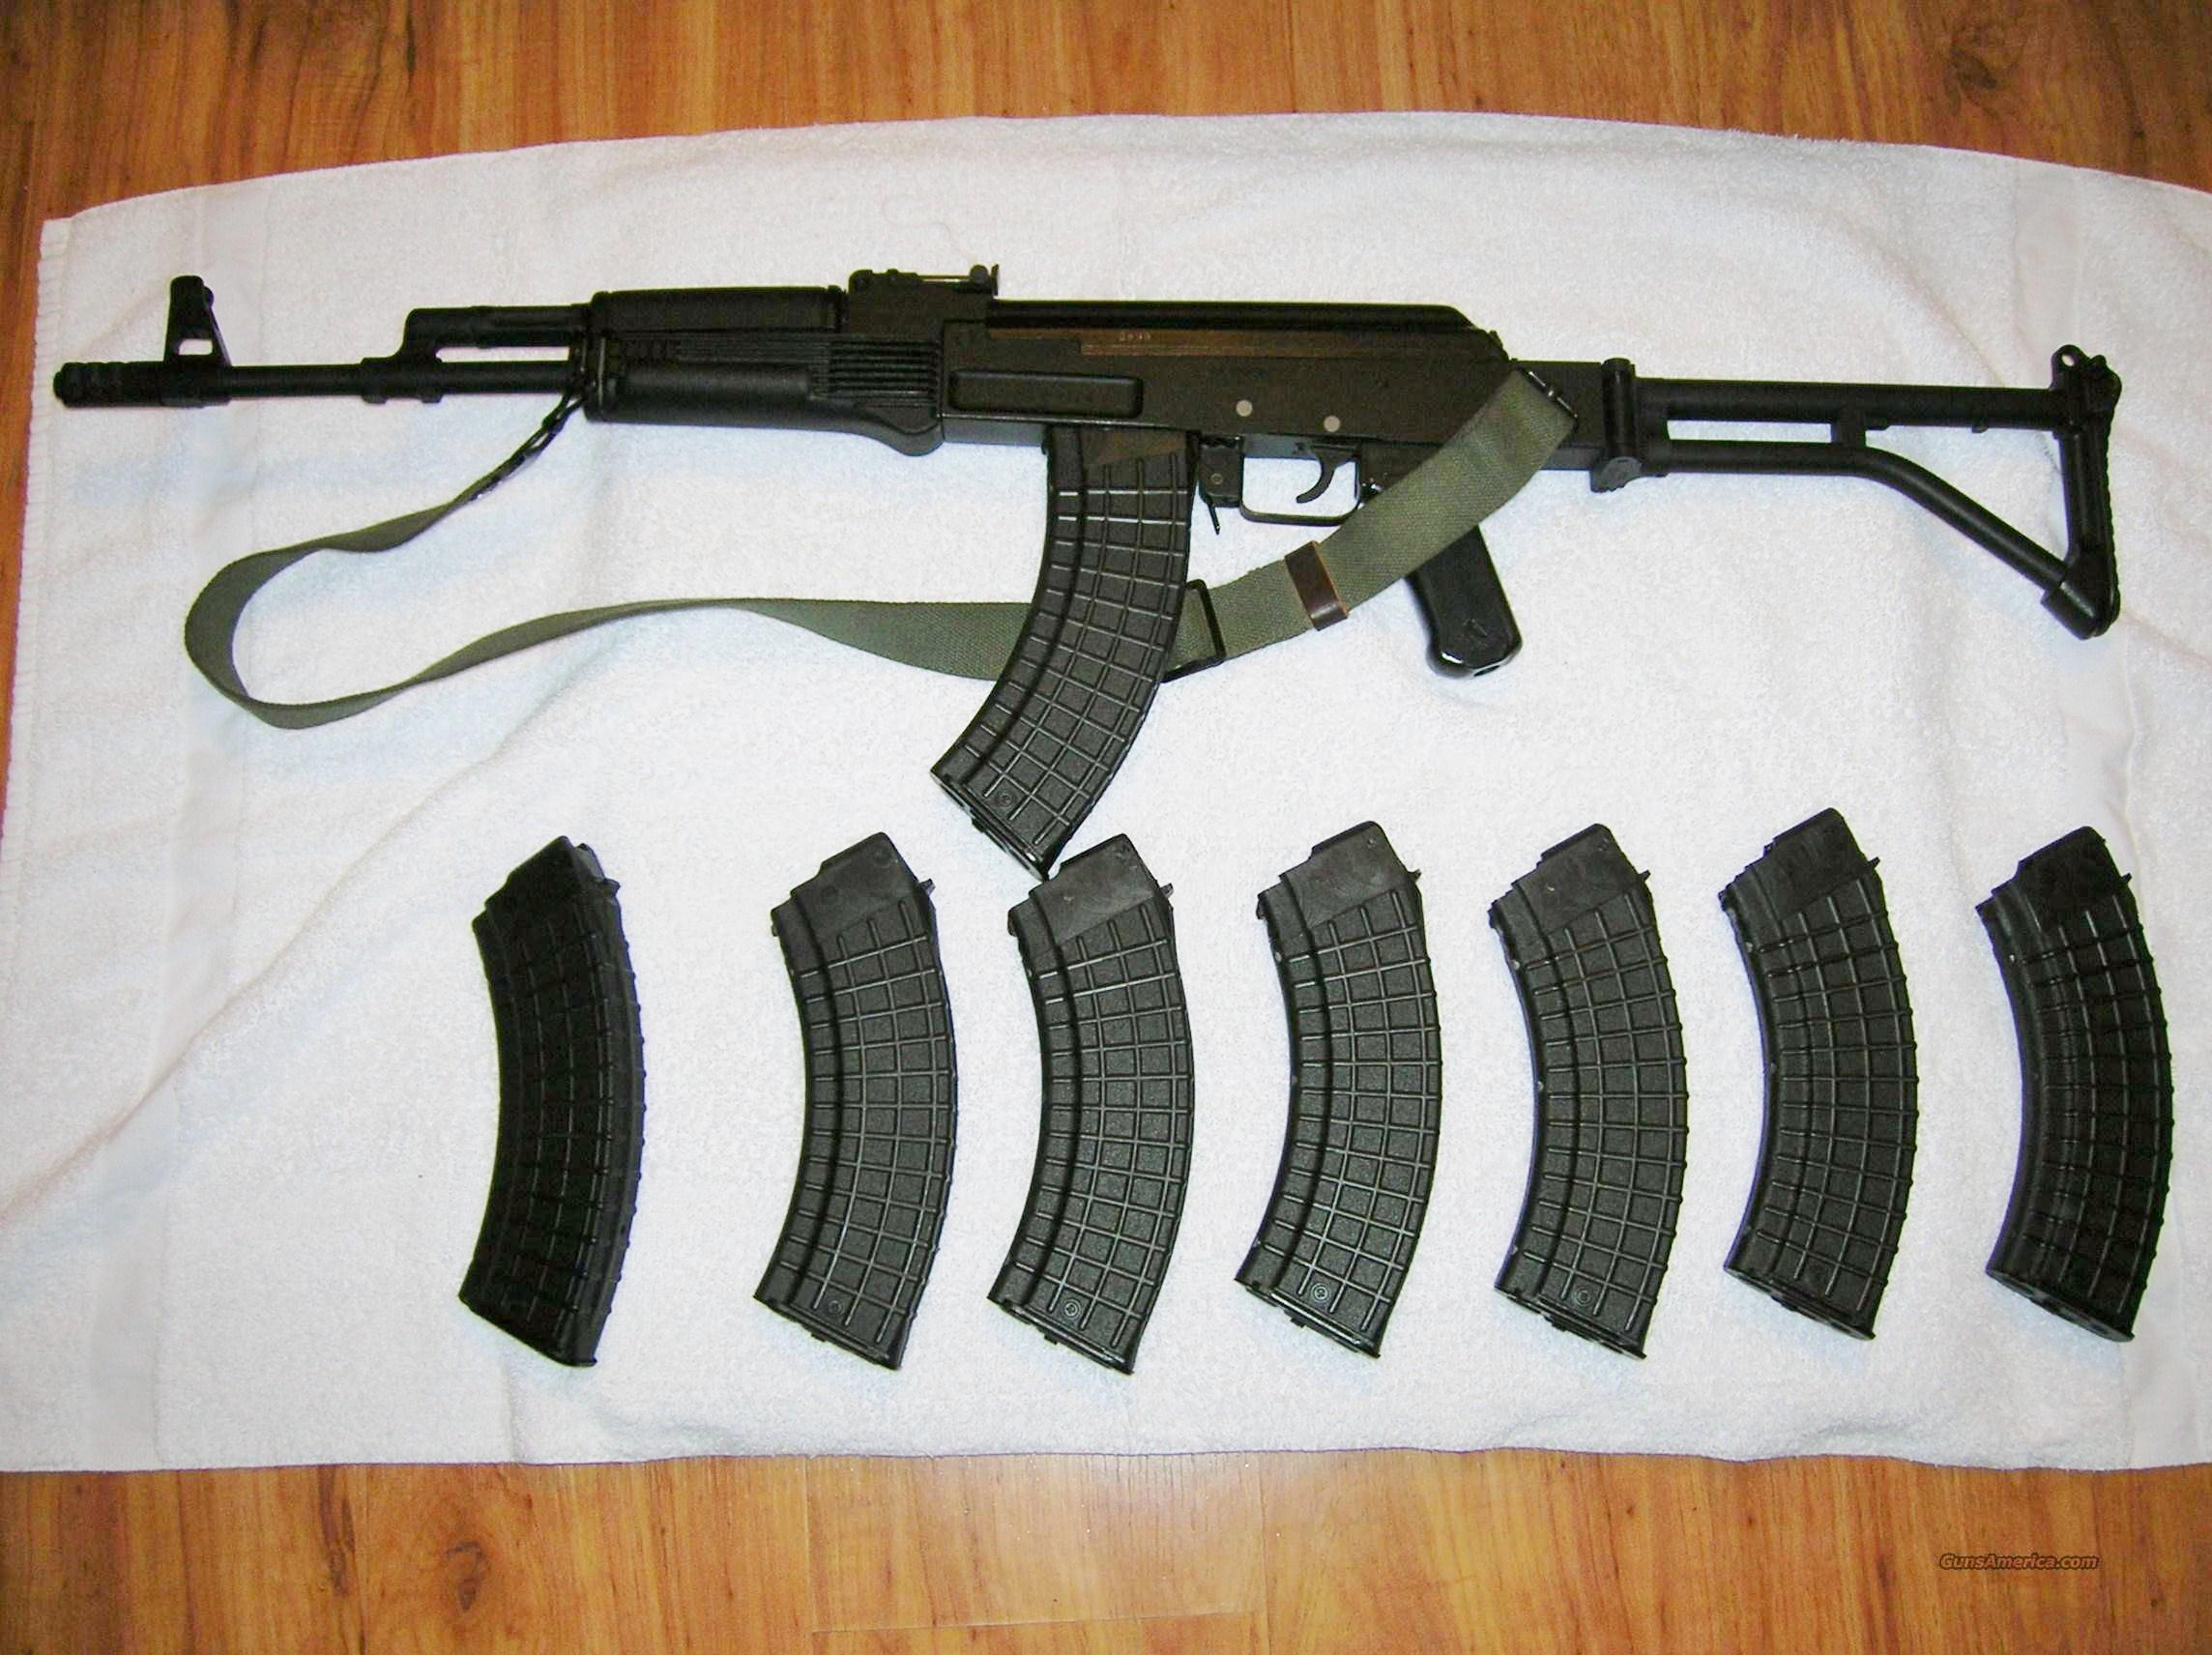 New Milled Bulgarian SLR-95 MB semi-automatic AK-47 by Arsenal & New BULGARIAN Clips  Guns > Rifles > AK-47 Rifles (and copies) > Folding Stock